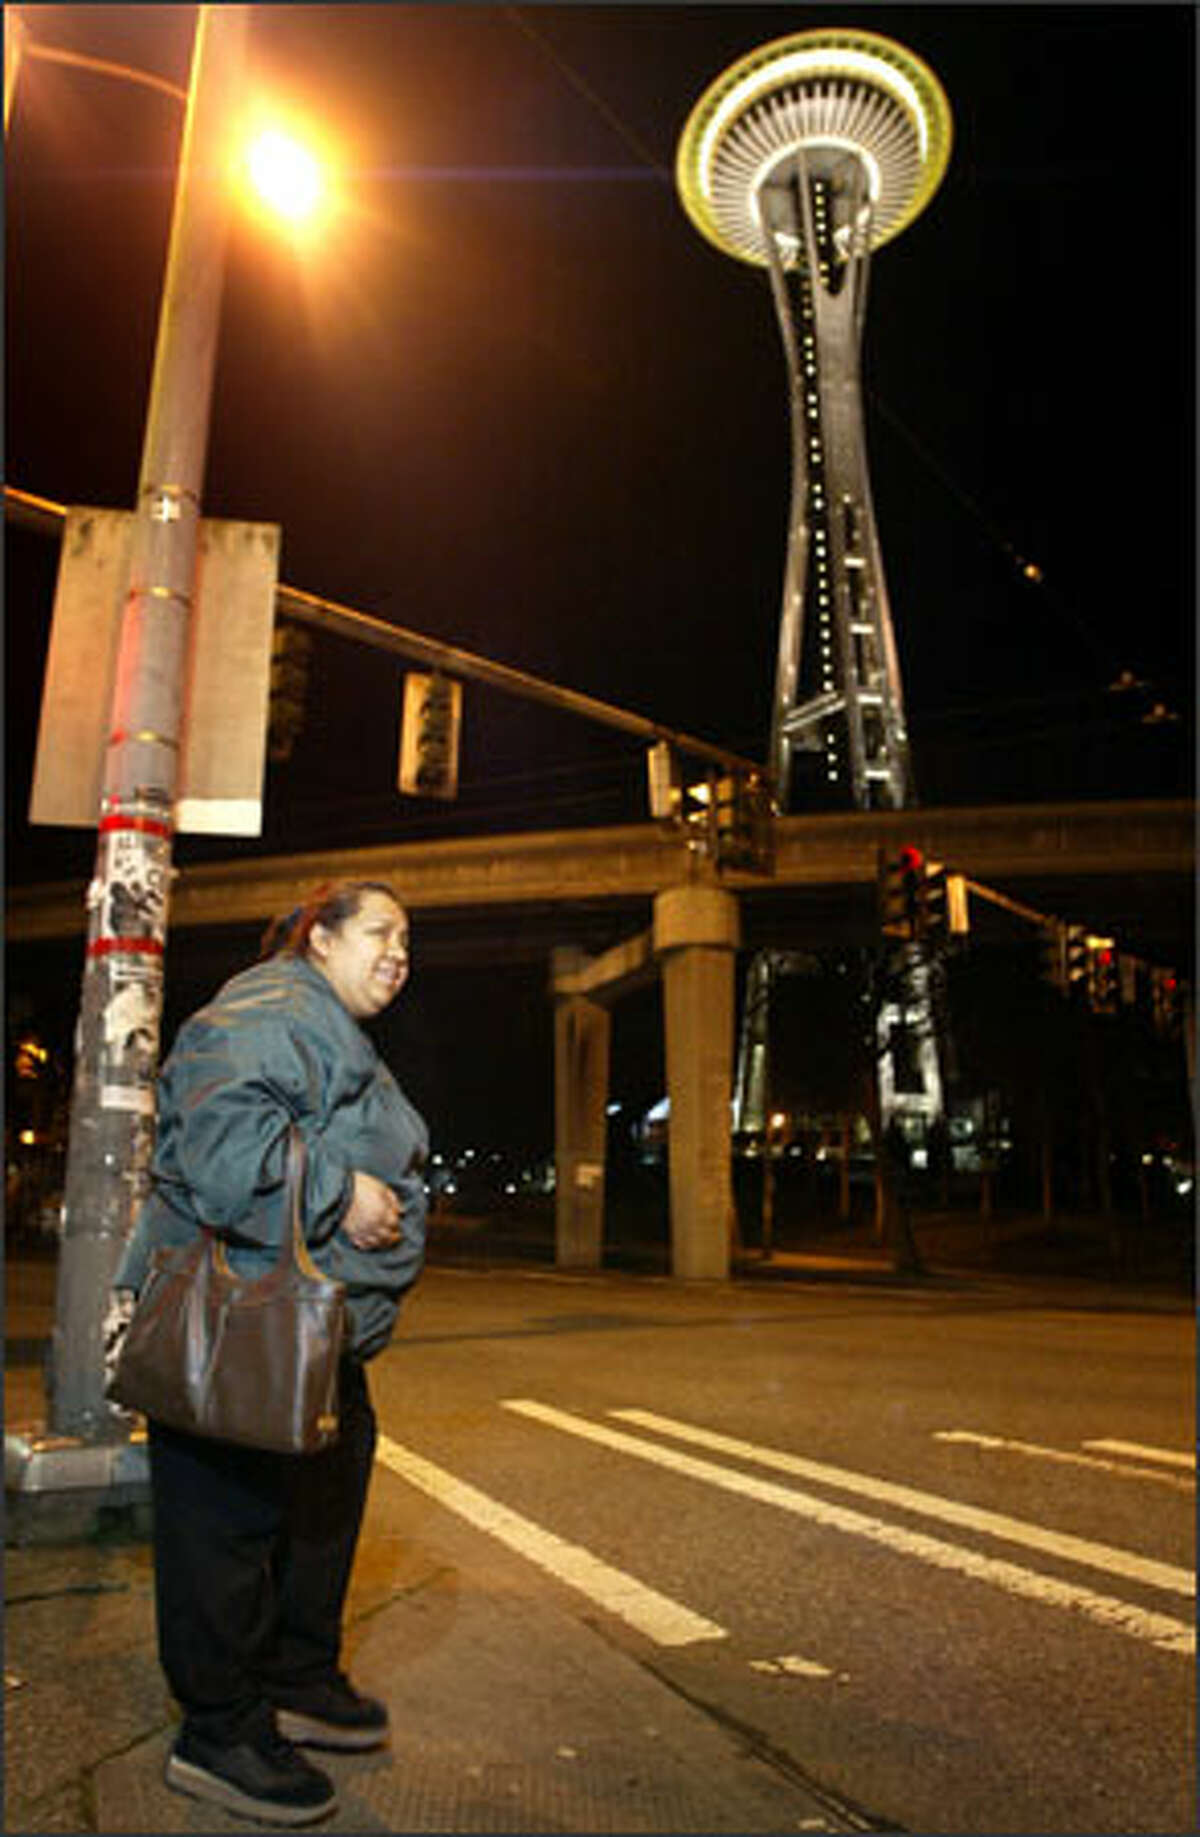 Narciza Pineda, 42, prepares to cross Broad Street on her way to her job as a janitor at the Space Needle, where she earns $10.75 an hour -- more than minimum wage, but barely enough for her family to live on.